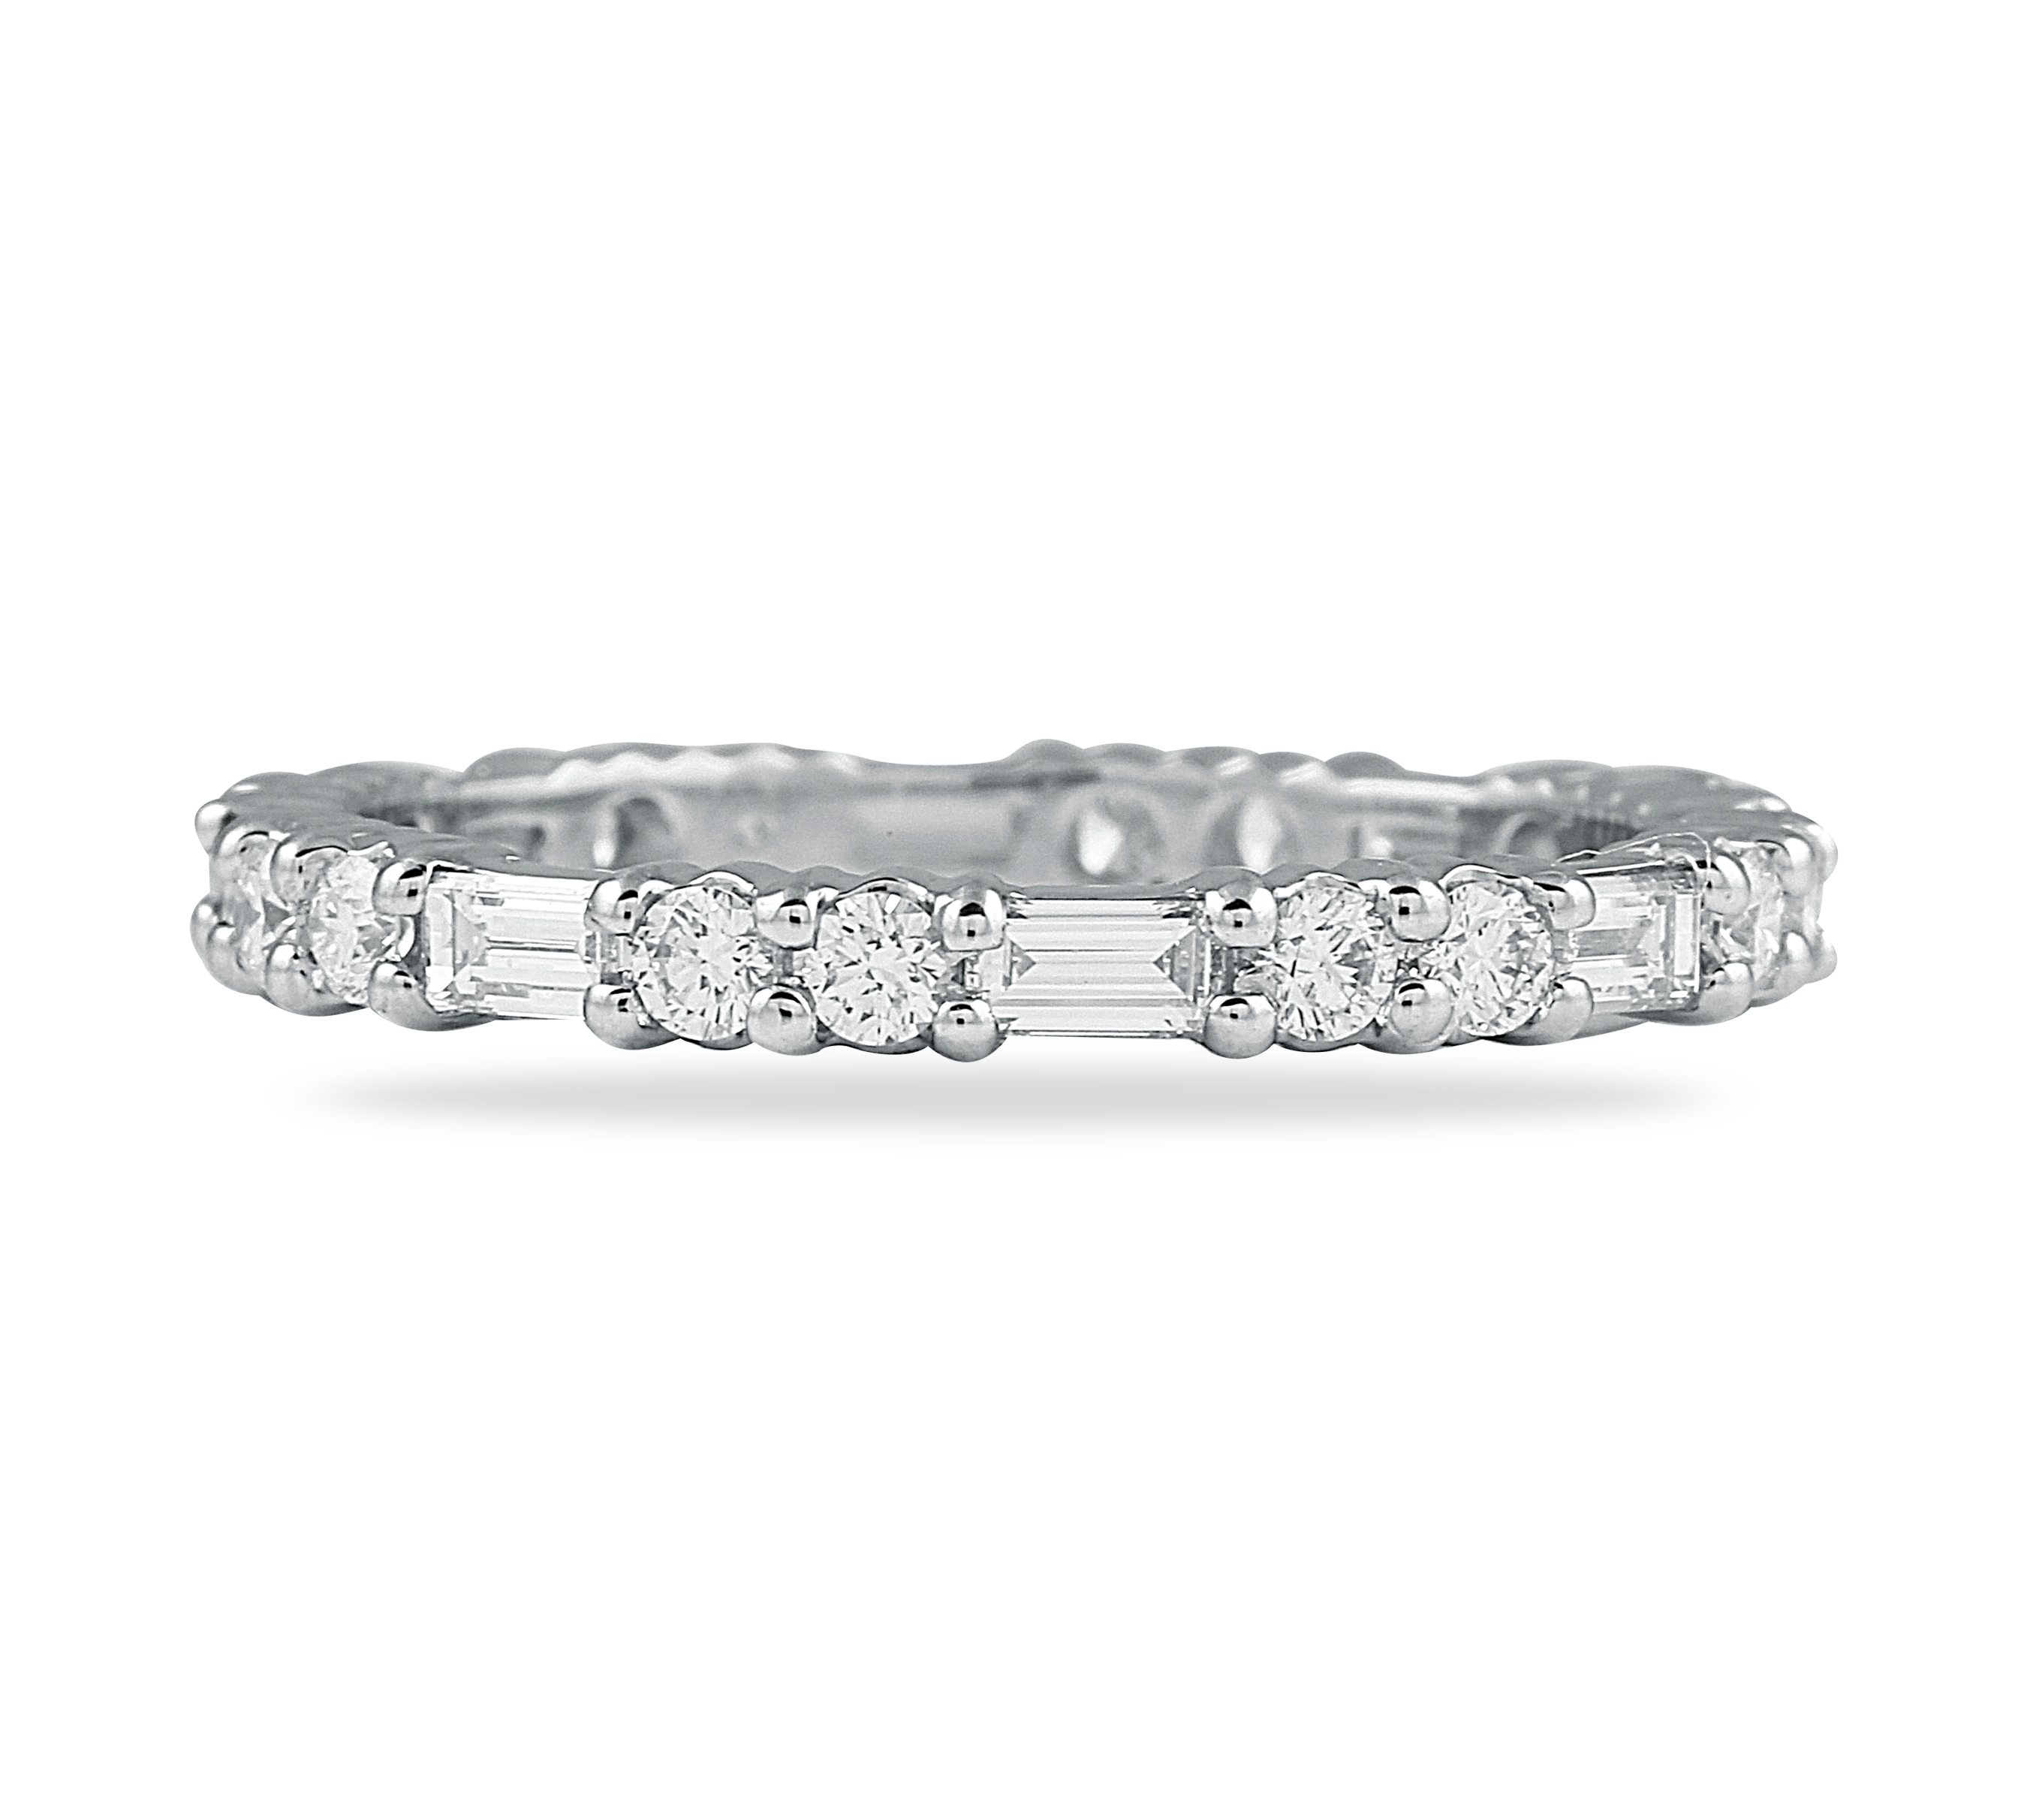 87 Ct Round And Baguette Diamond Shared Prong Eternity Band Within Most Recently Released Baguette And Round Diamond Alternating Anniversary Bands In White Gold (View 8 of 25)